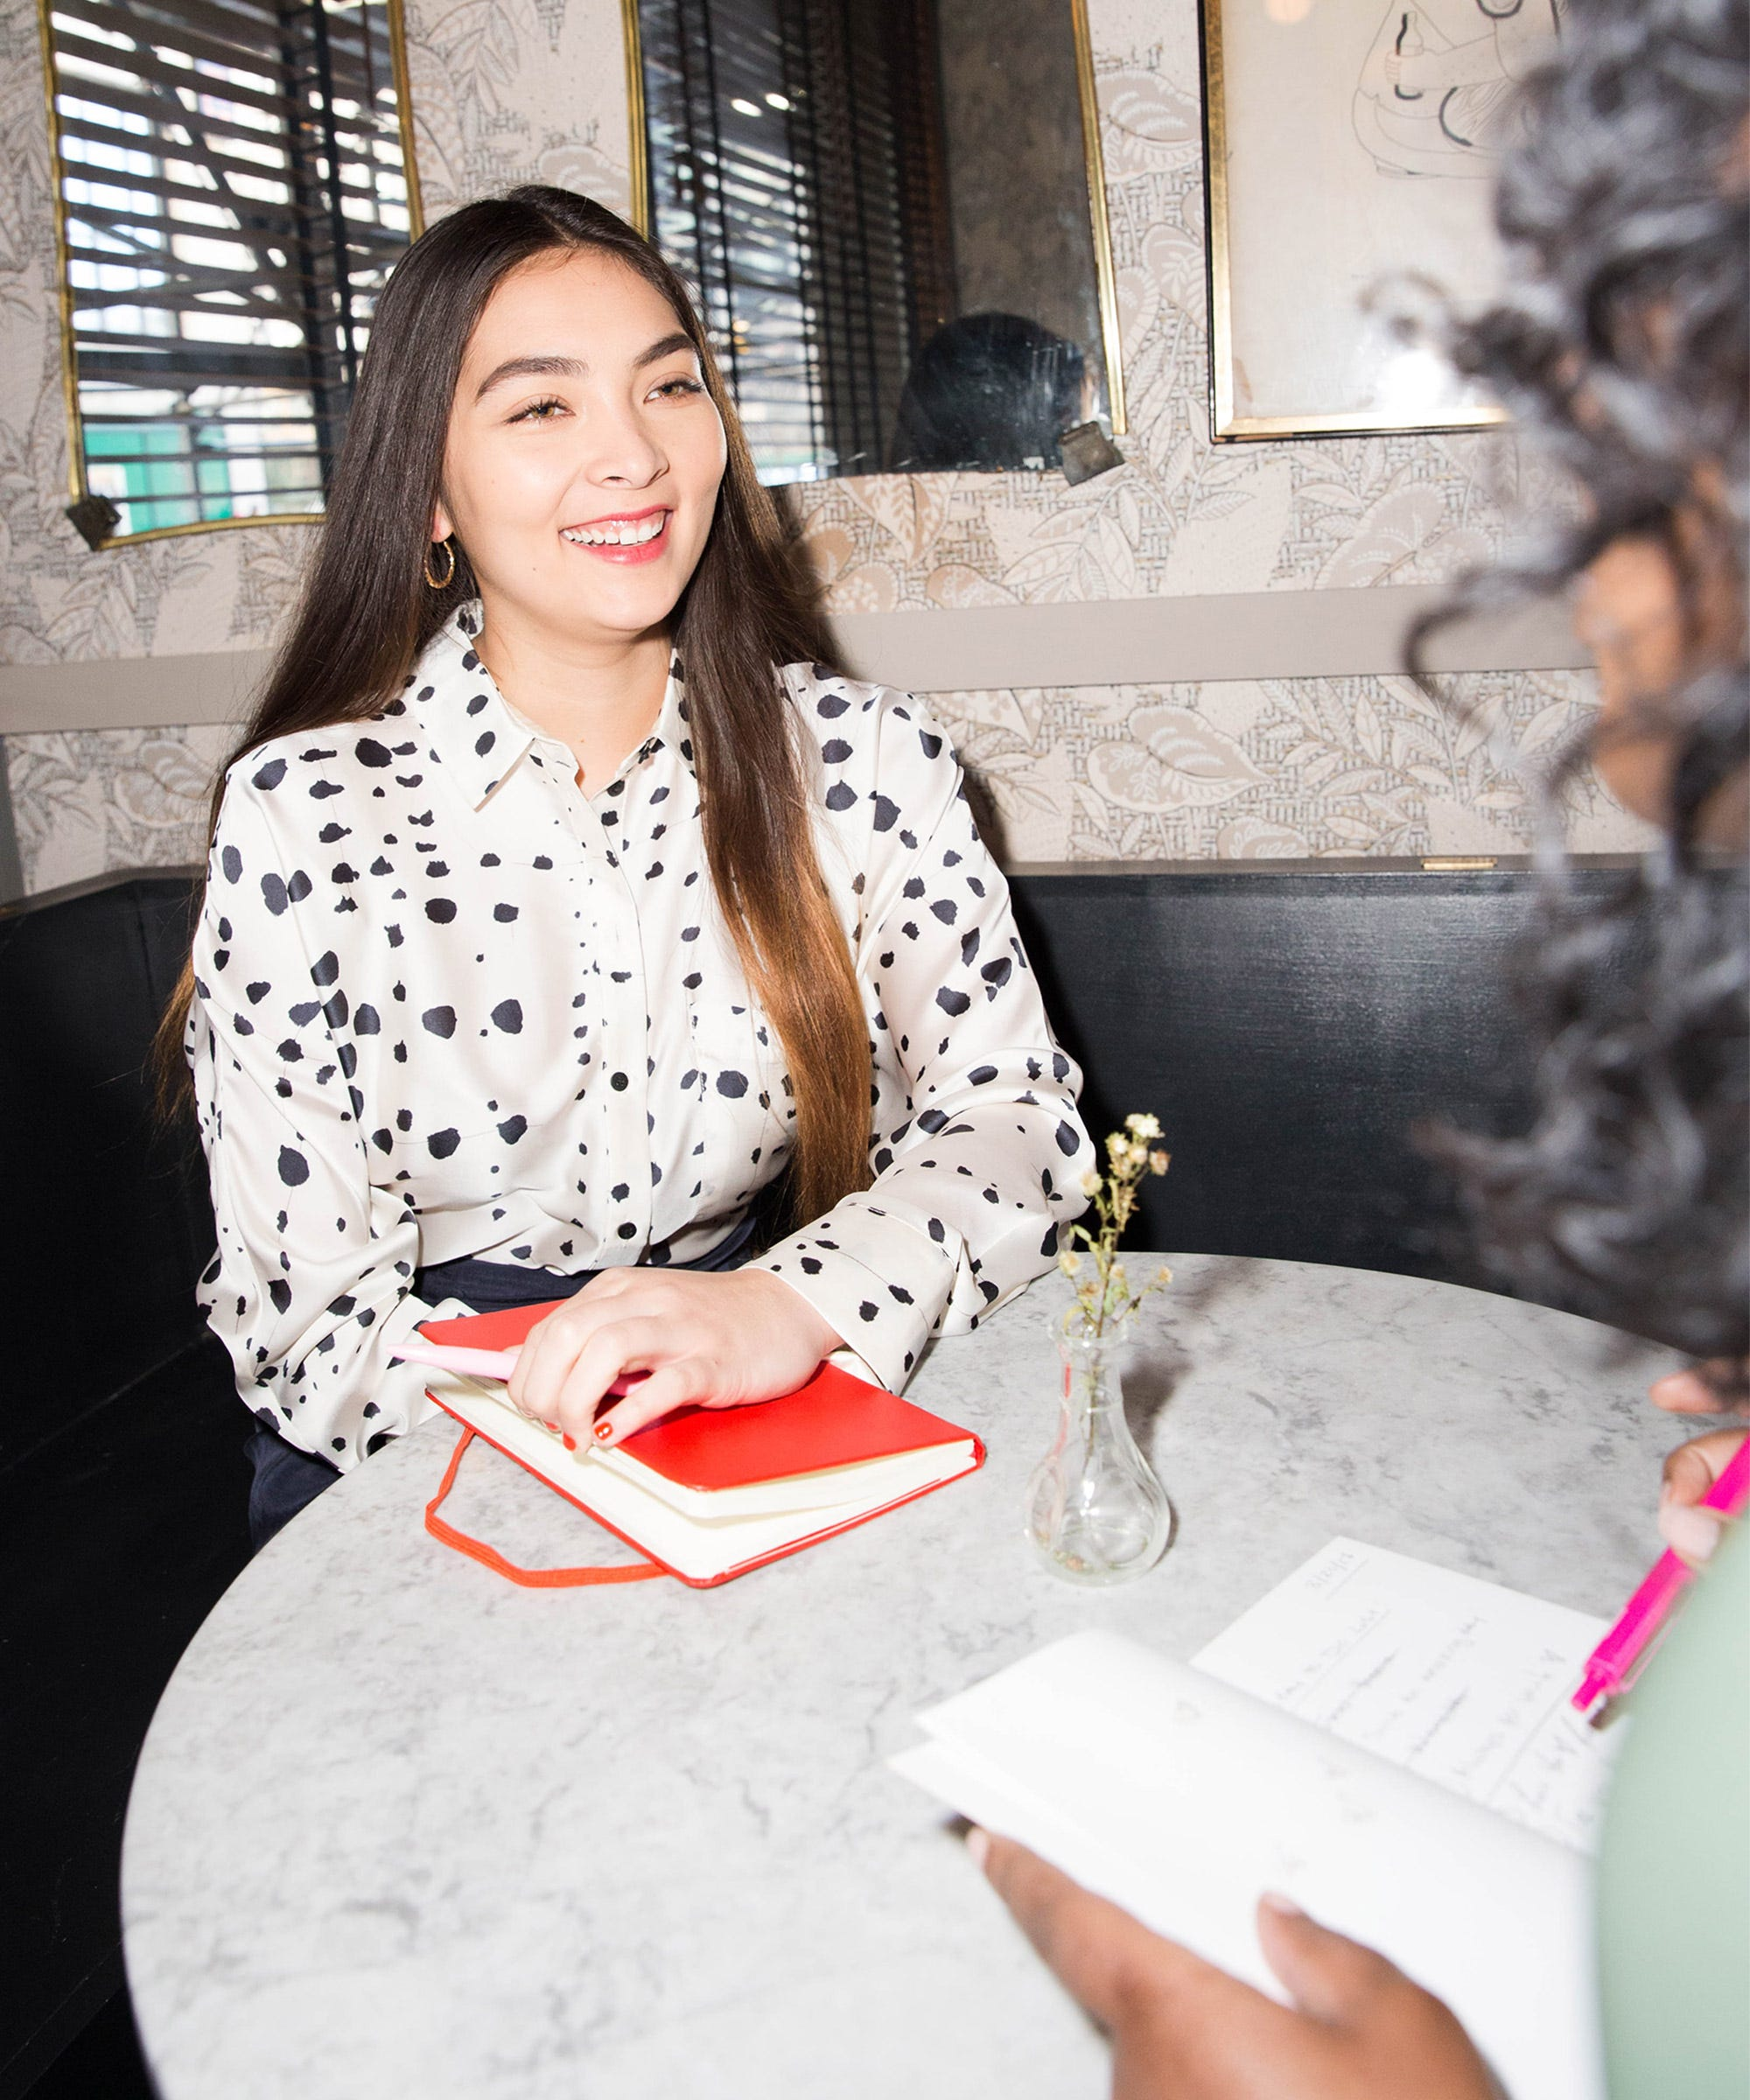 9 Things You Should Never Forget To Bring To A Job Interview